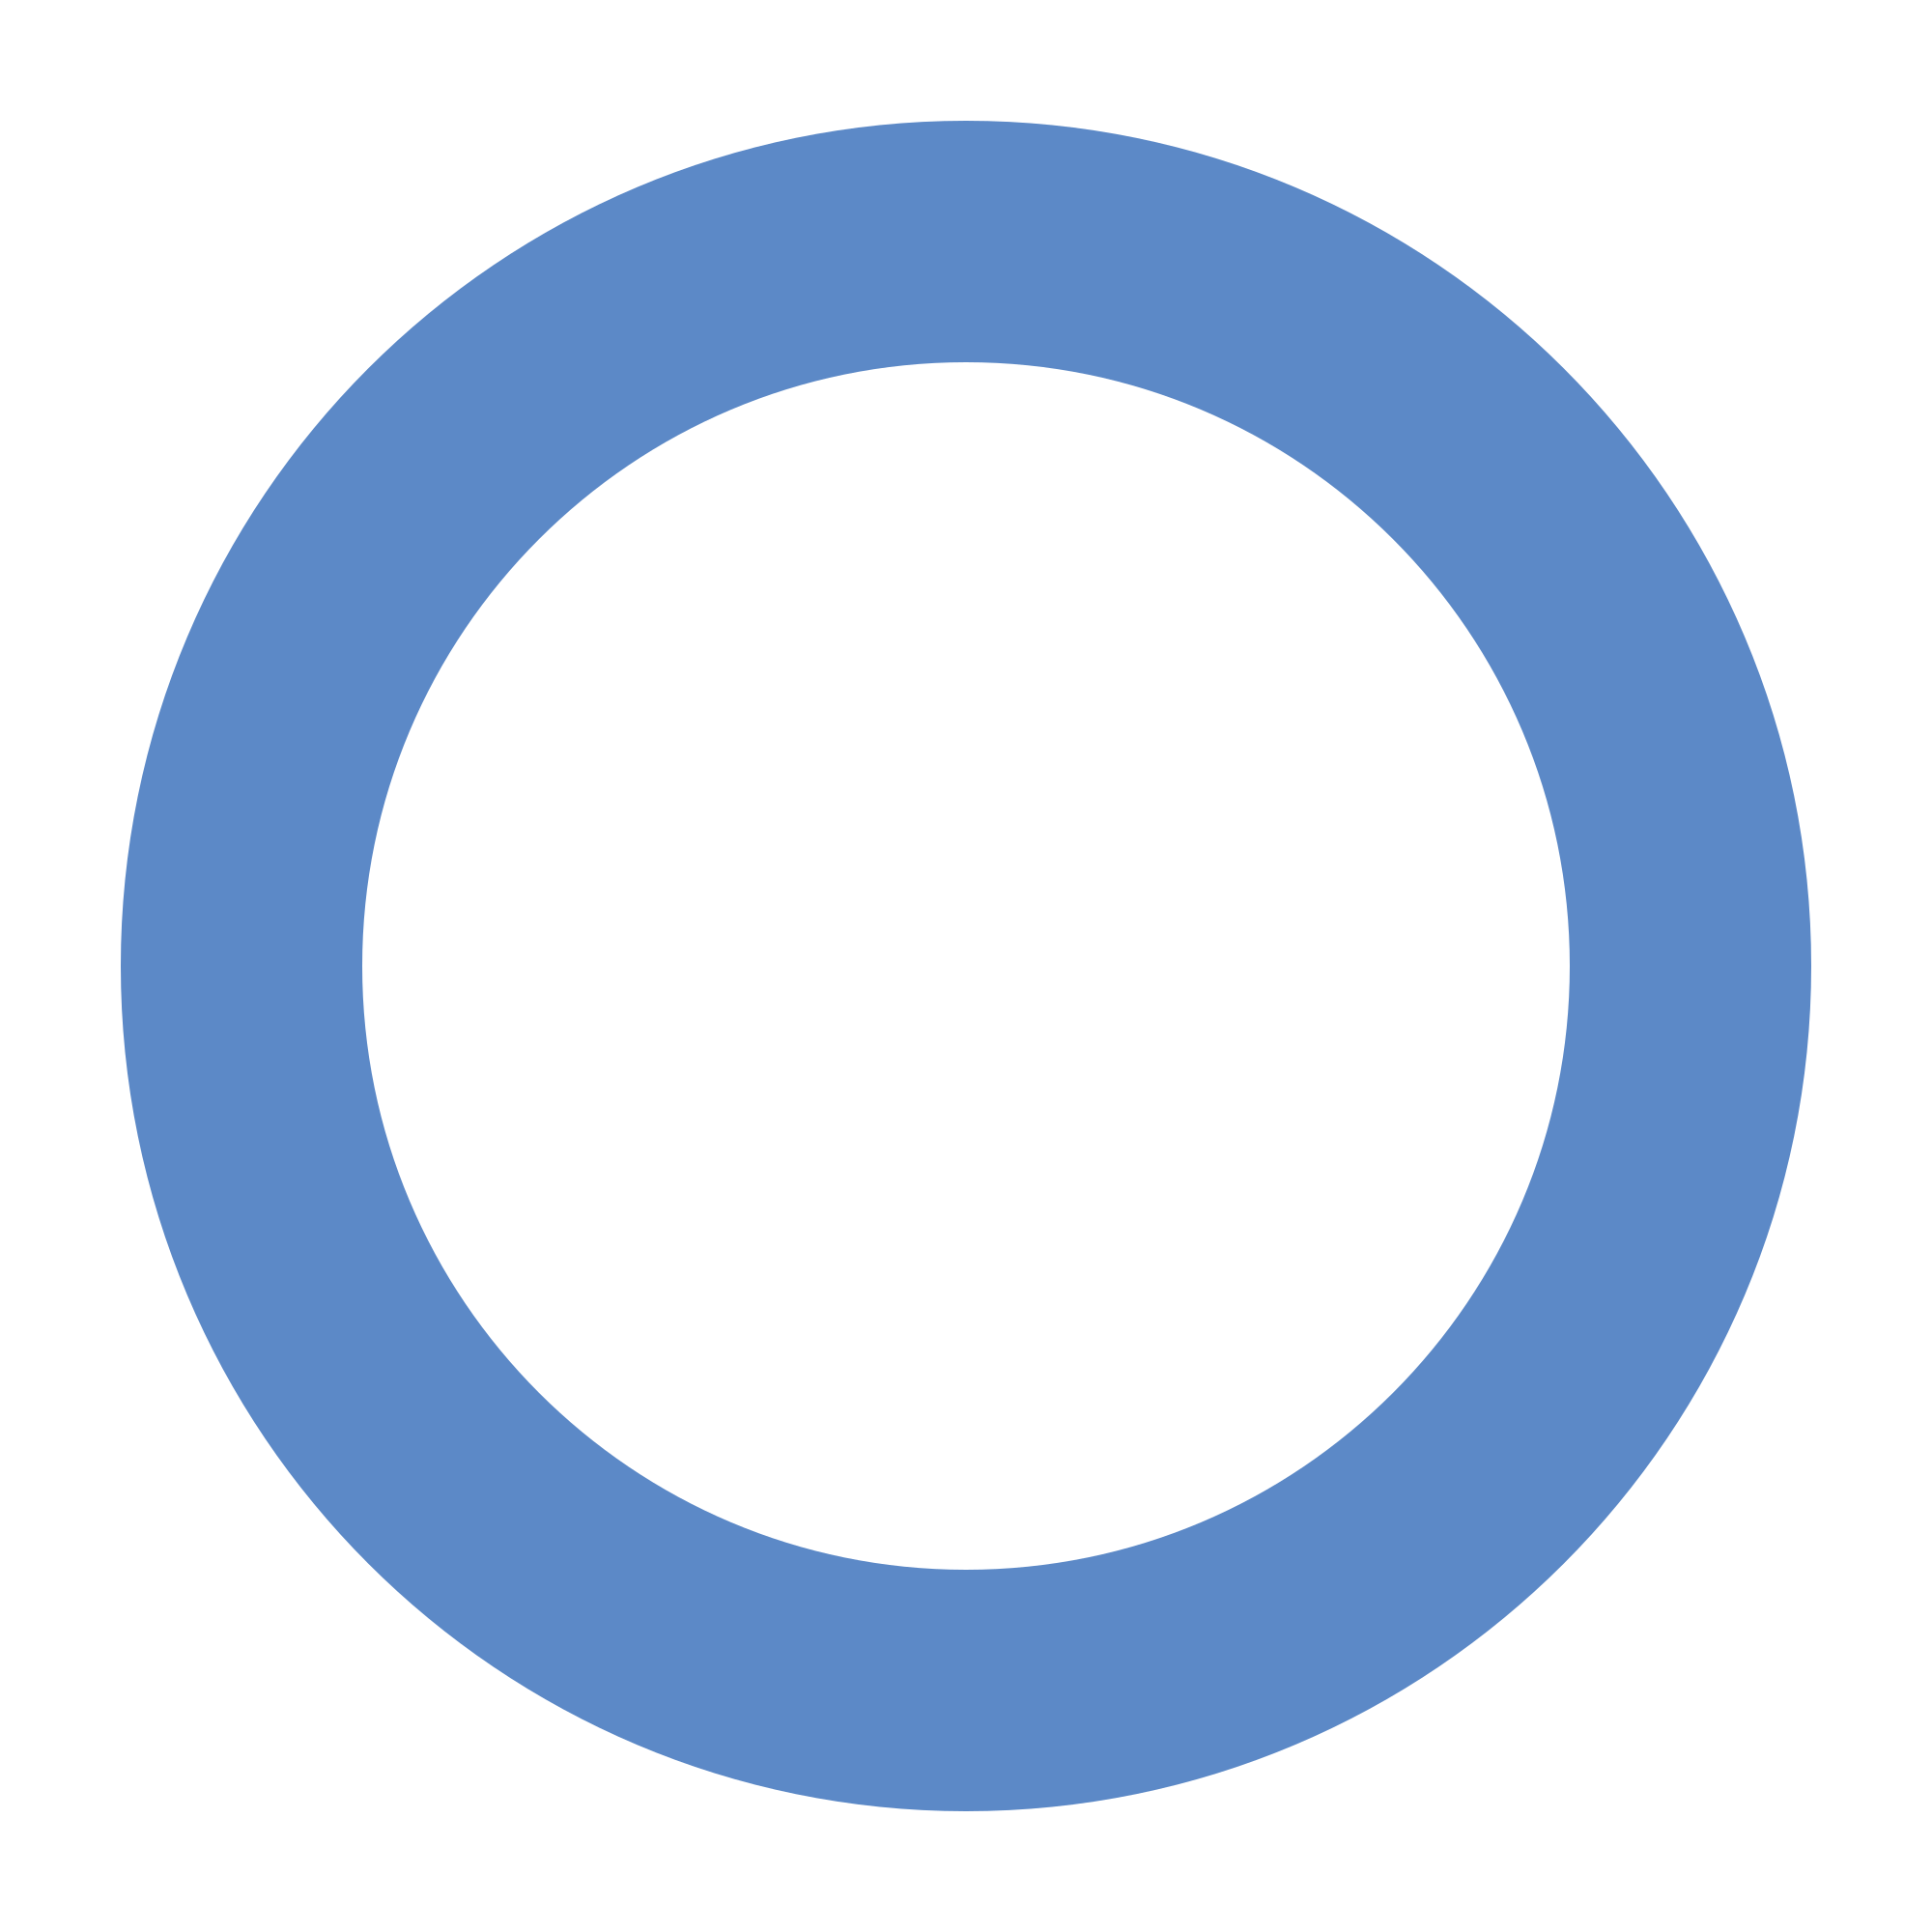 Blue circle png. File for diabetes svg